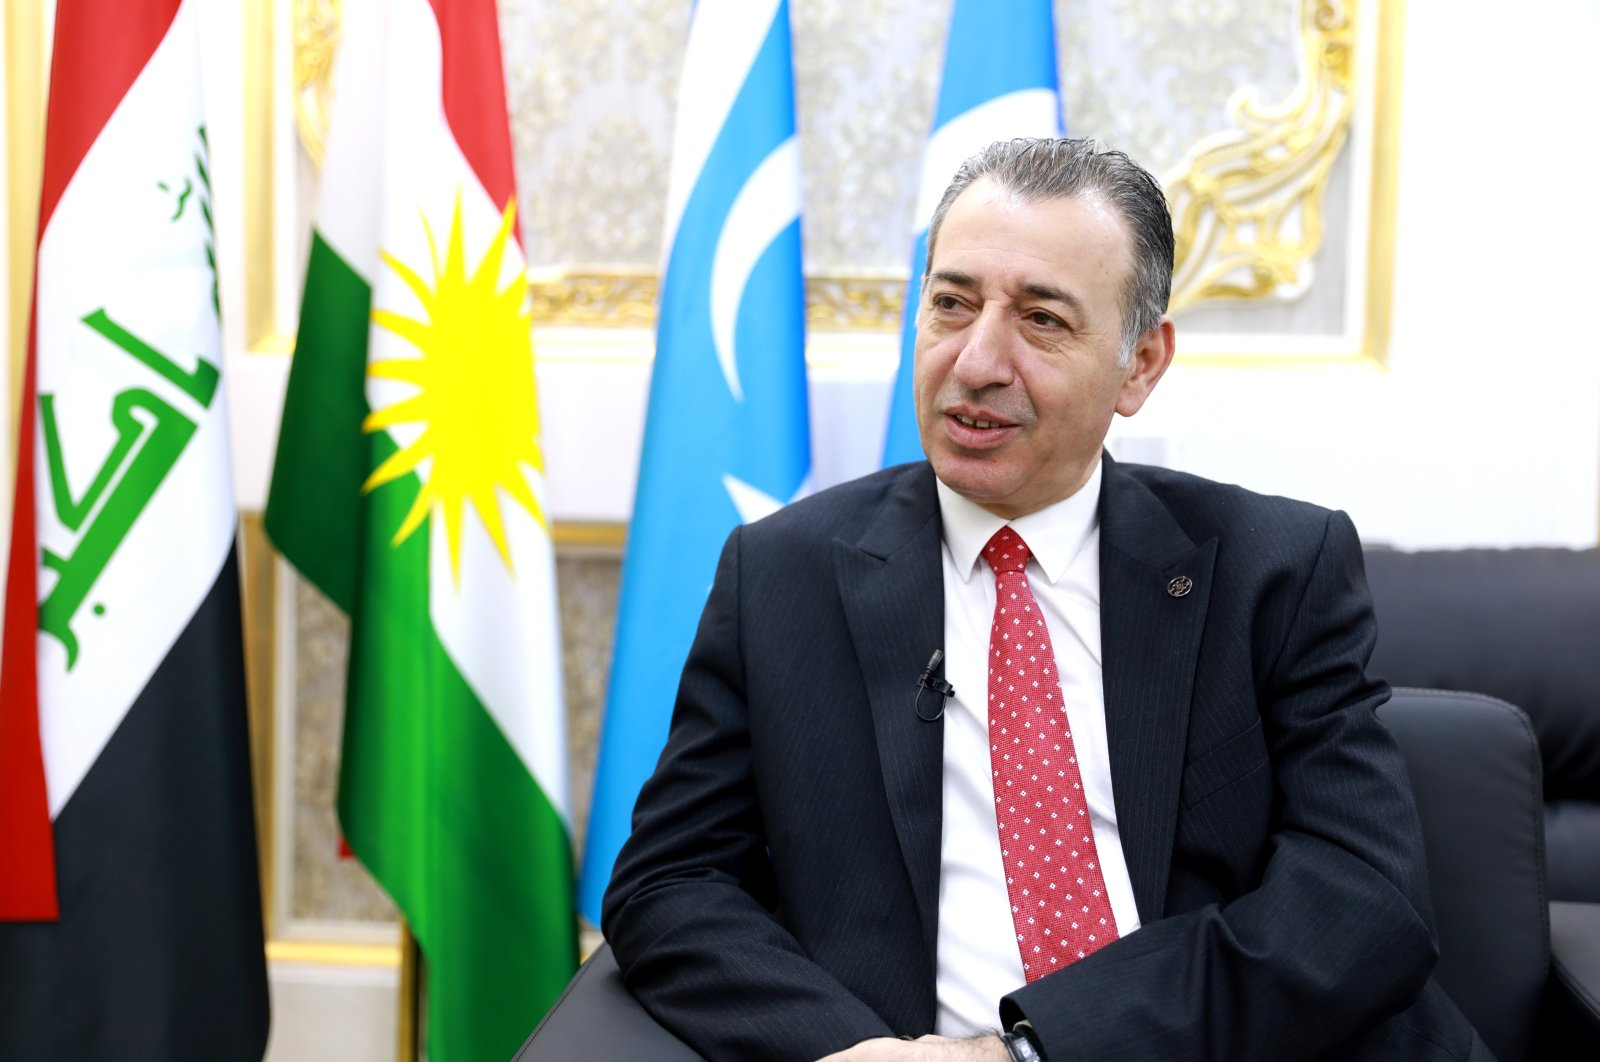 KRG Minister of Region for Components' Affairs Aydın Maruf speaks in an interview with the Anadolu Agency (AA) in Kirkuk, Iraq, April 6, 2021 (AA Photo)